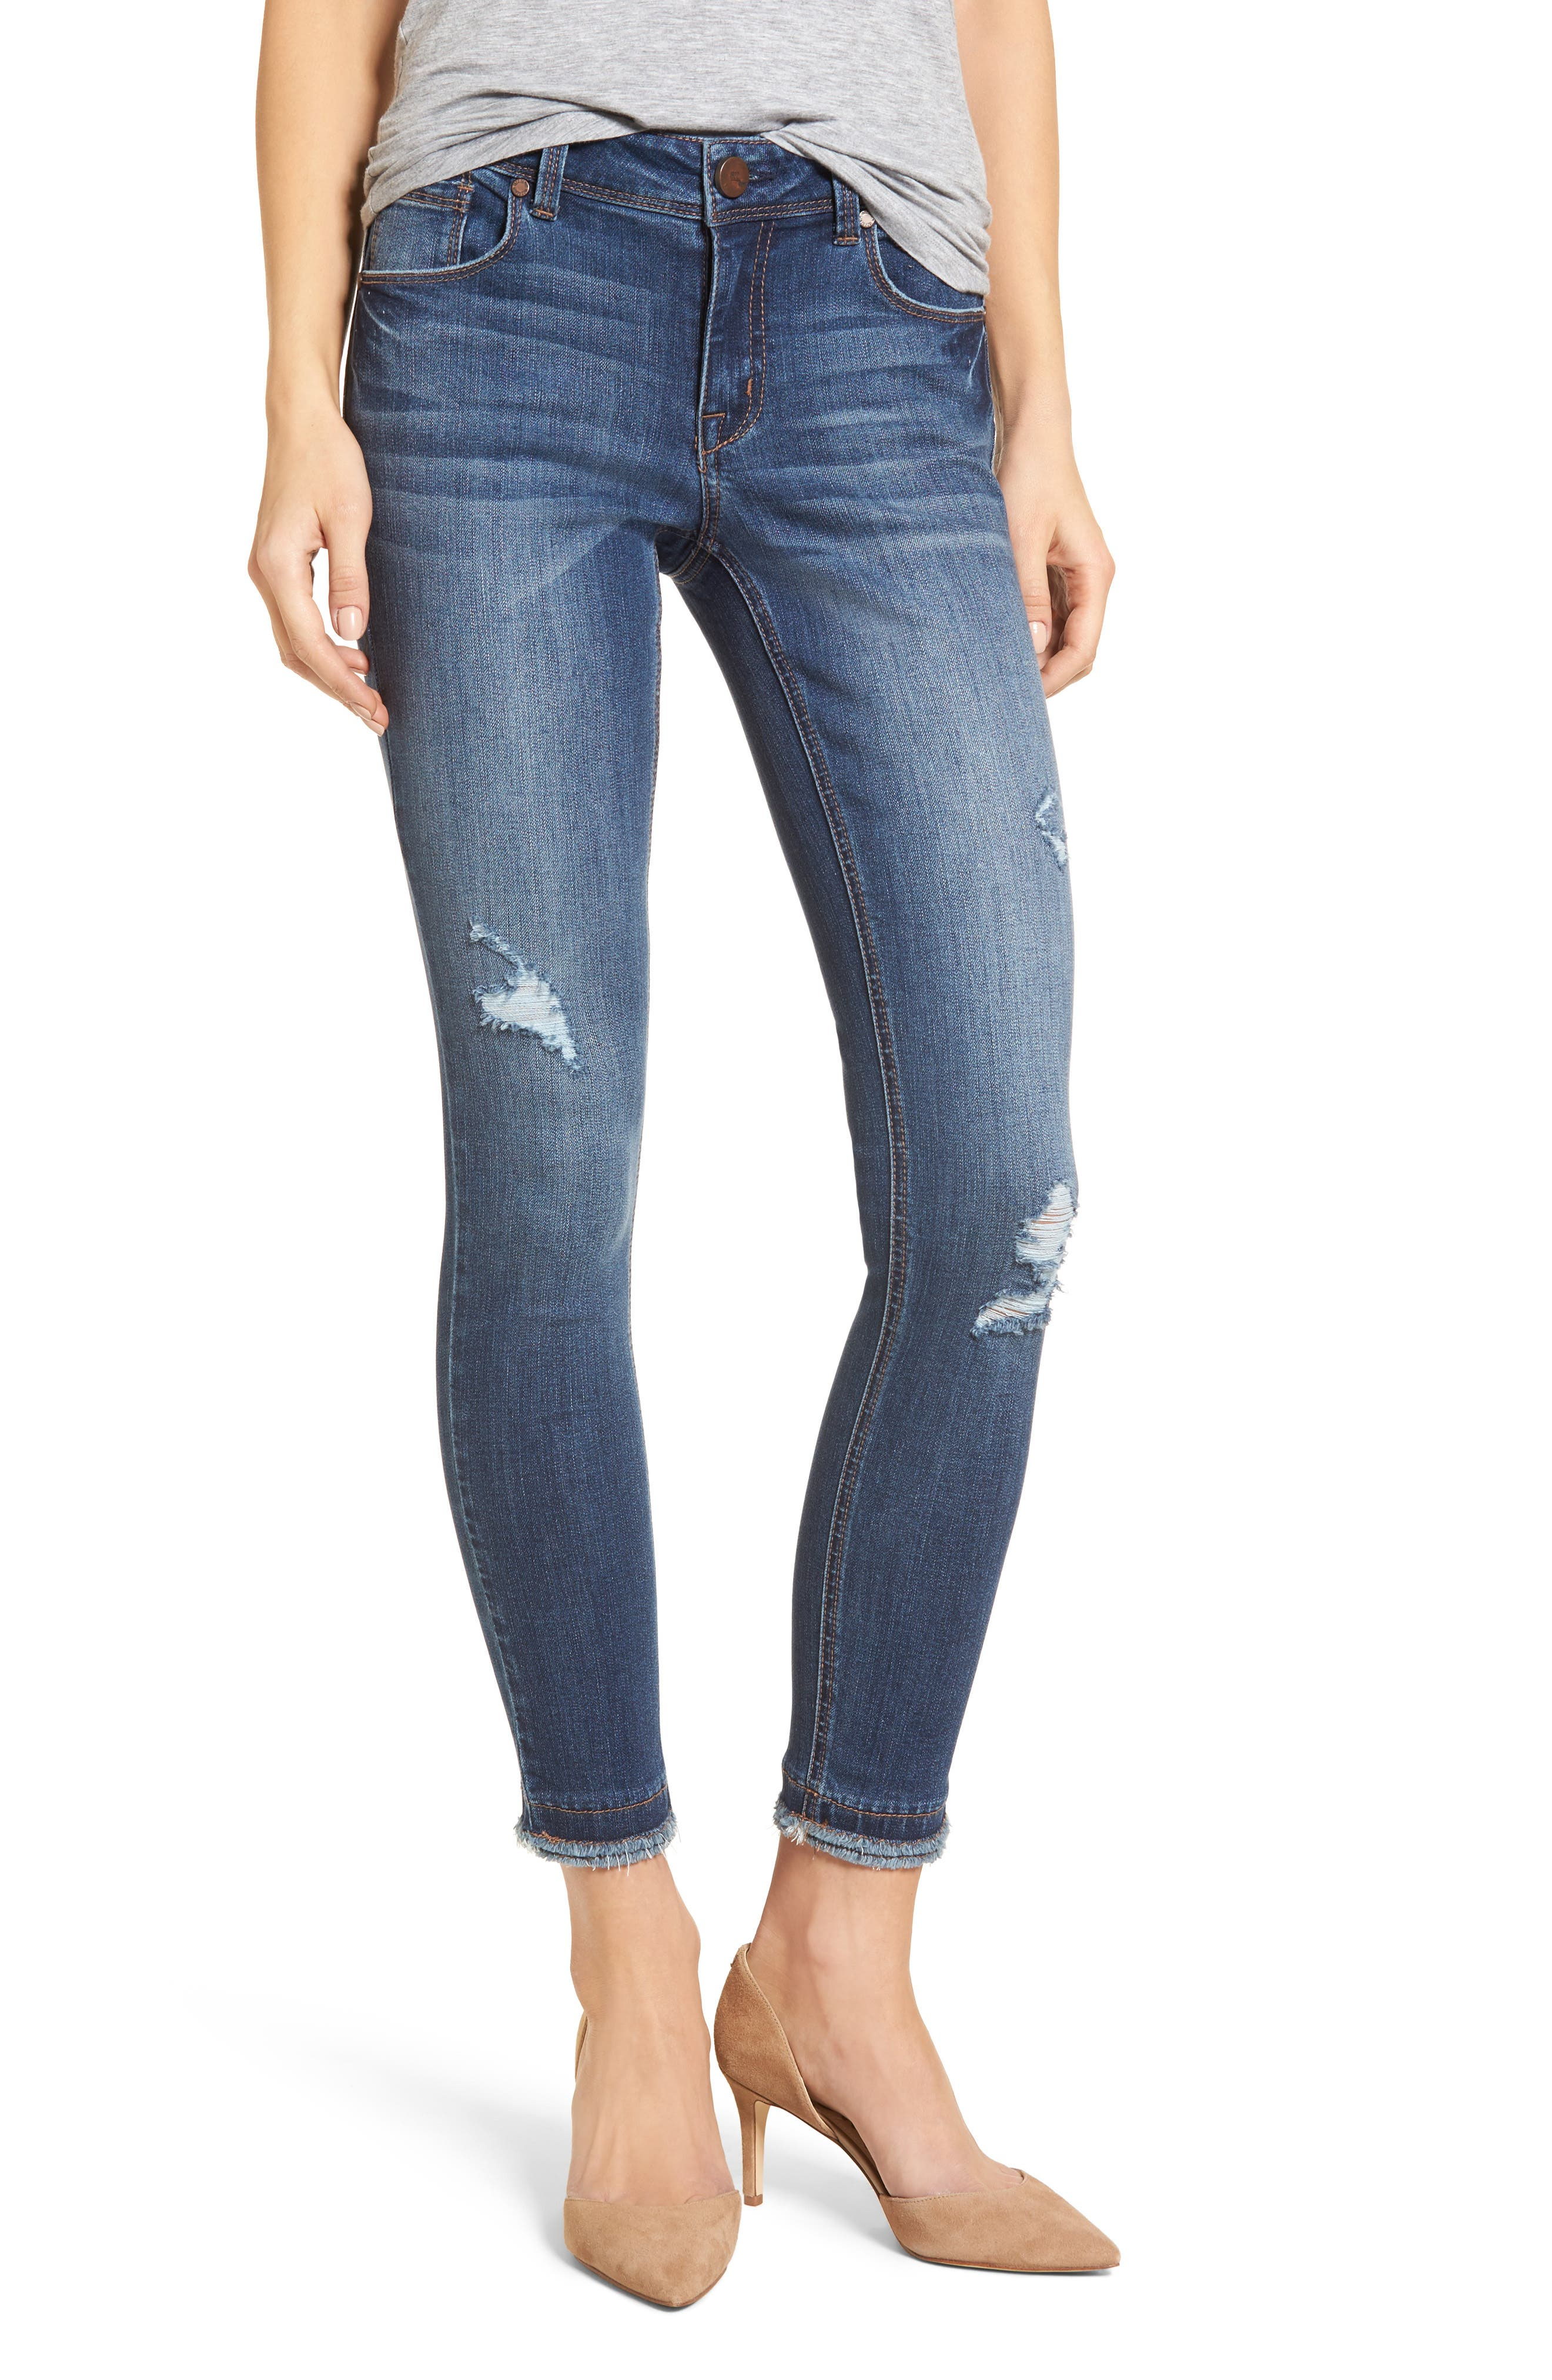 Alternate Image 1 Selected - 1822 Denim Double Fray Hem Skinny Jeans (Gerard)